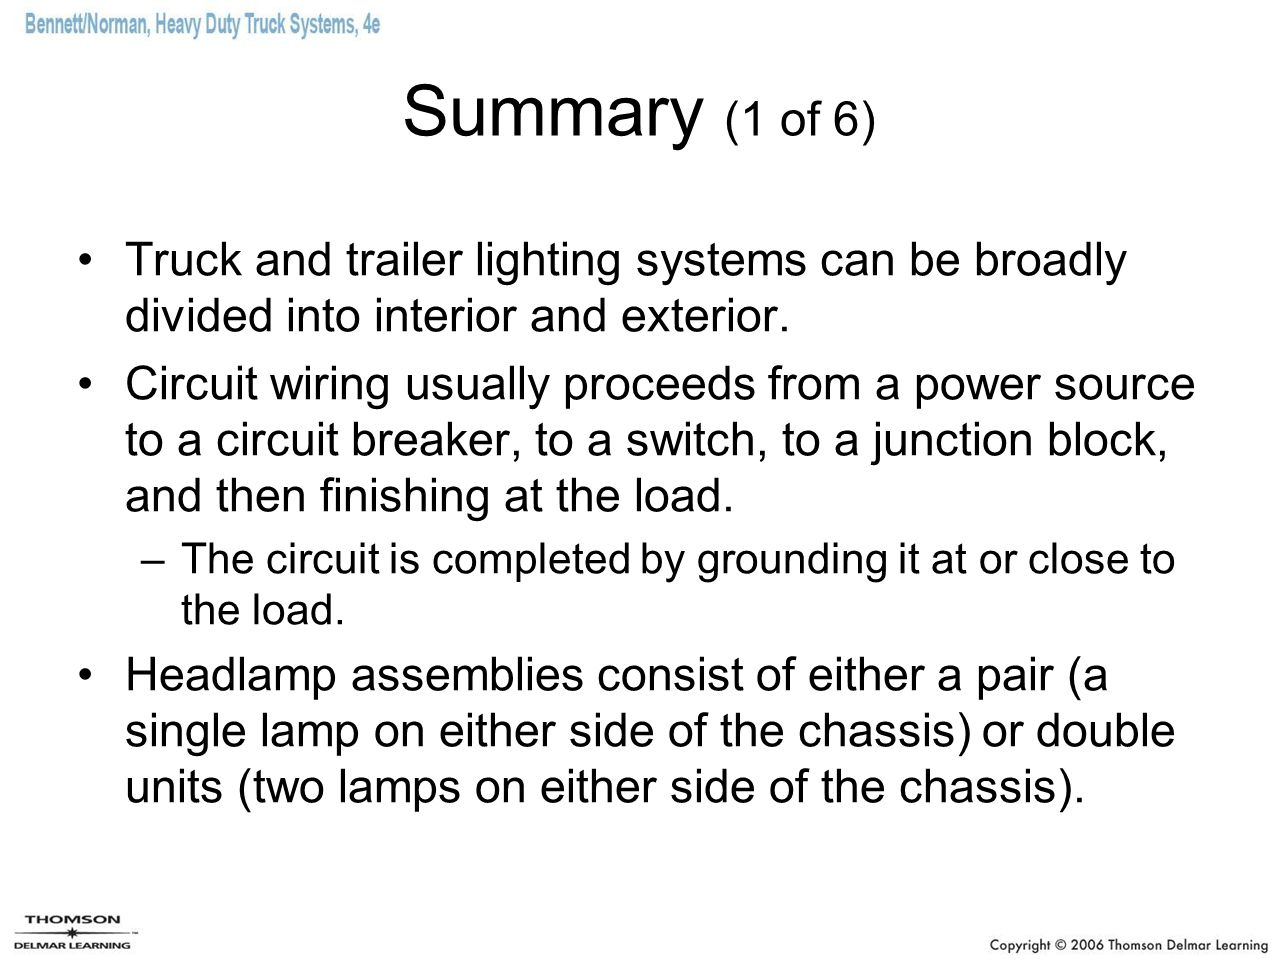 Summary (1 of 6) Truck and trailer lighting systems can be broadly divided into interior and exterior.